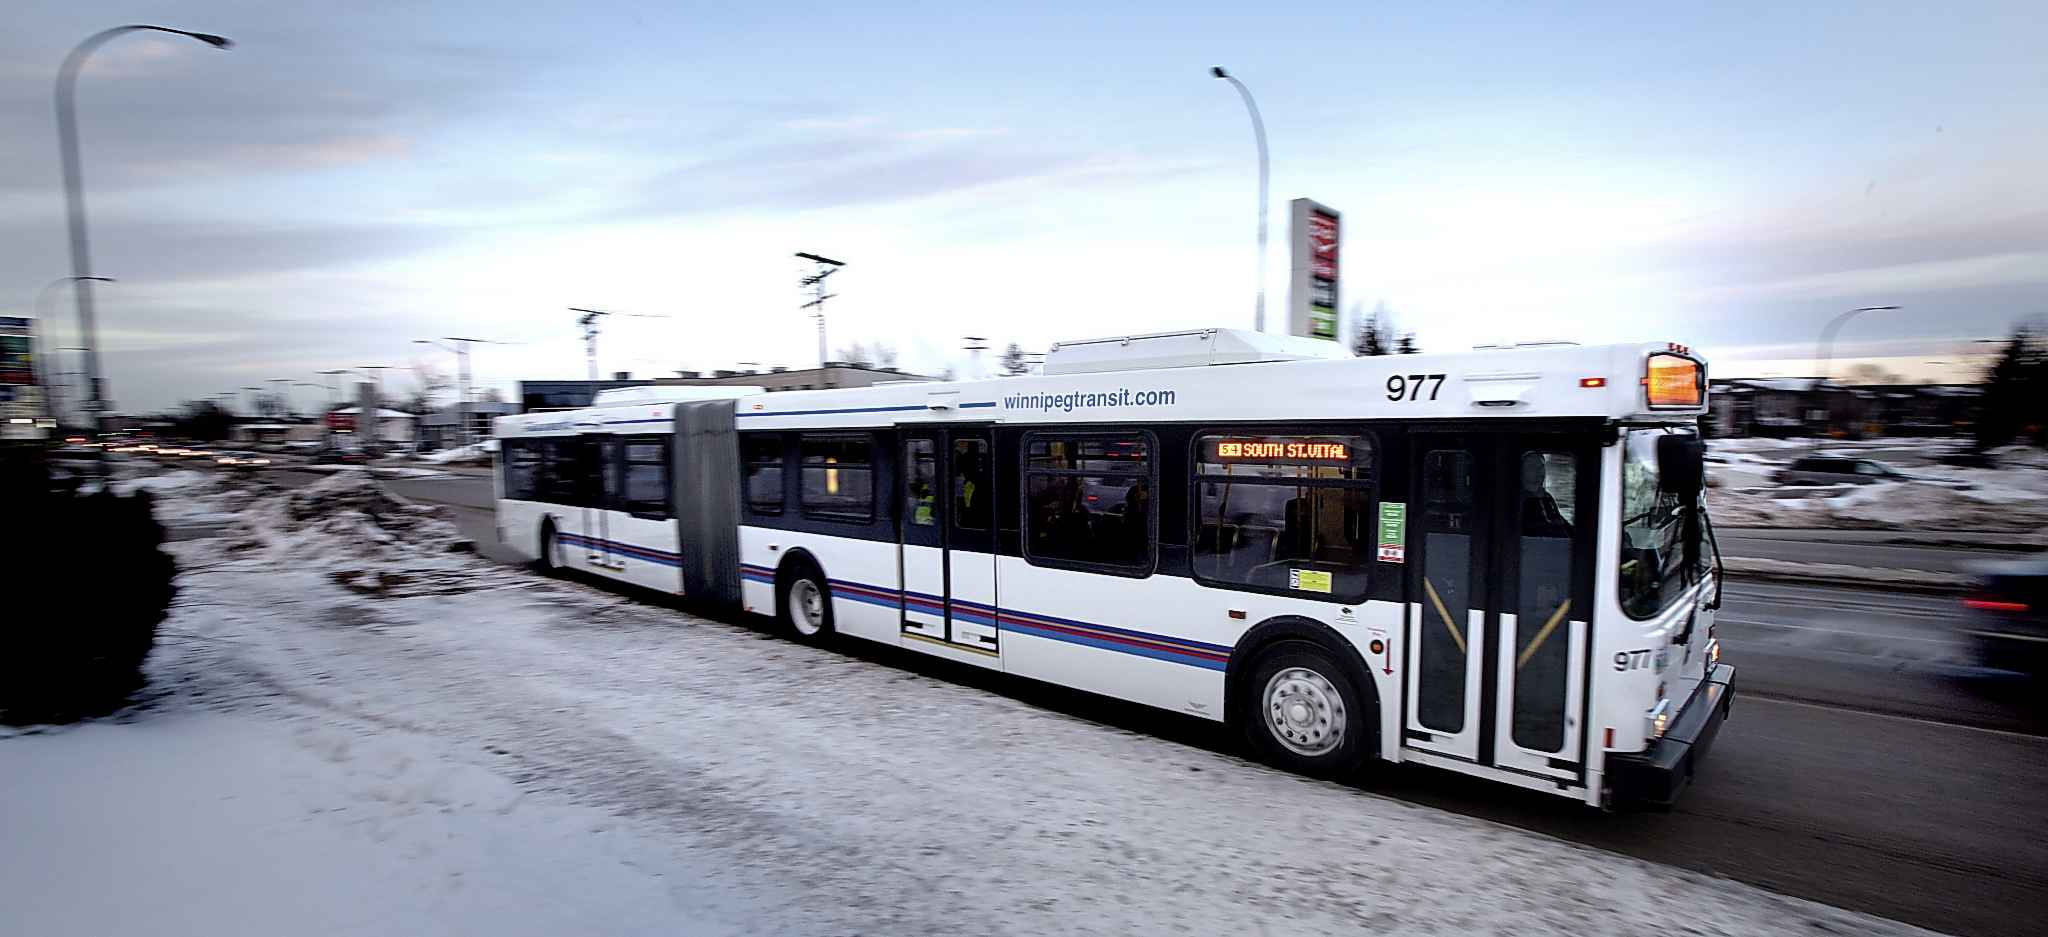 Winnipeg Transit has ordered 28 new 18-metre articulated buses, which should be completed by the end of the year. (Phil Hossack / Winnipeg Free Press files)